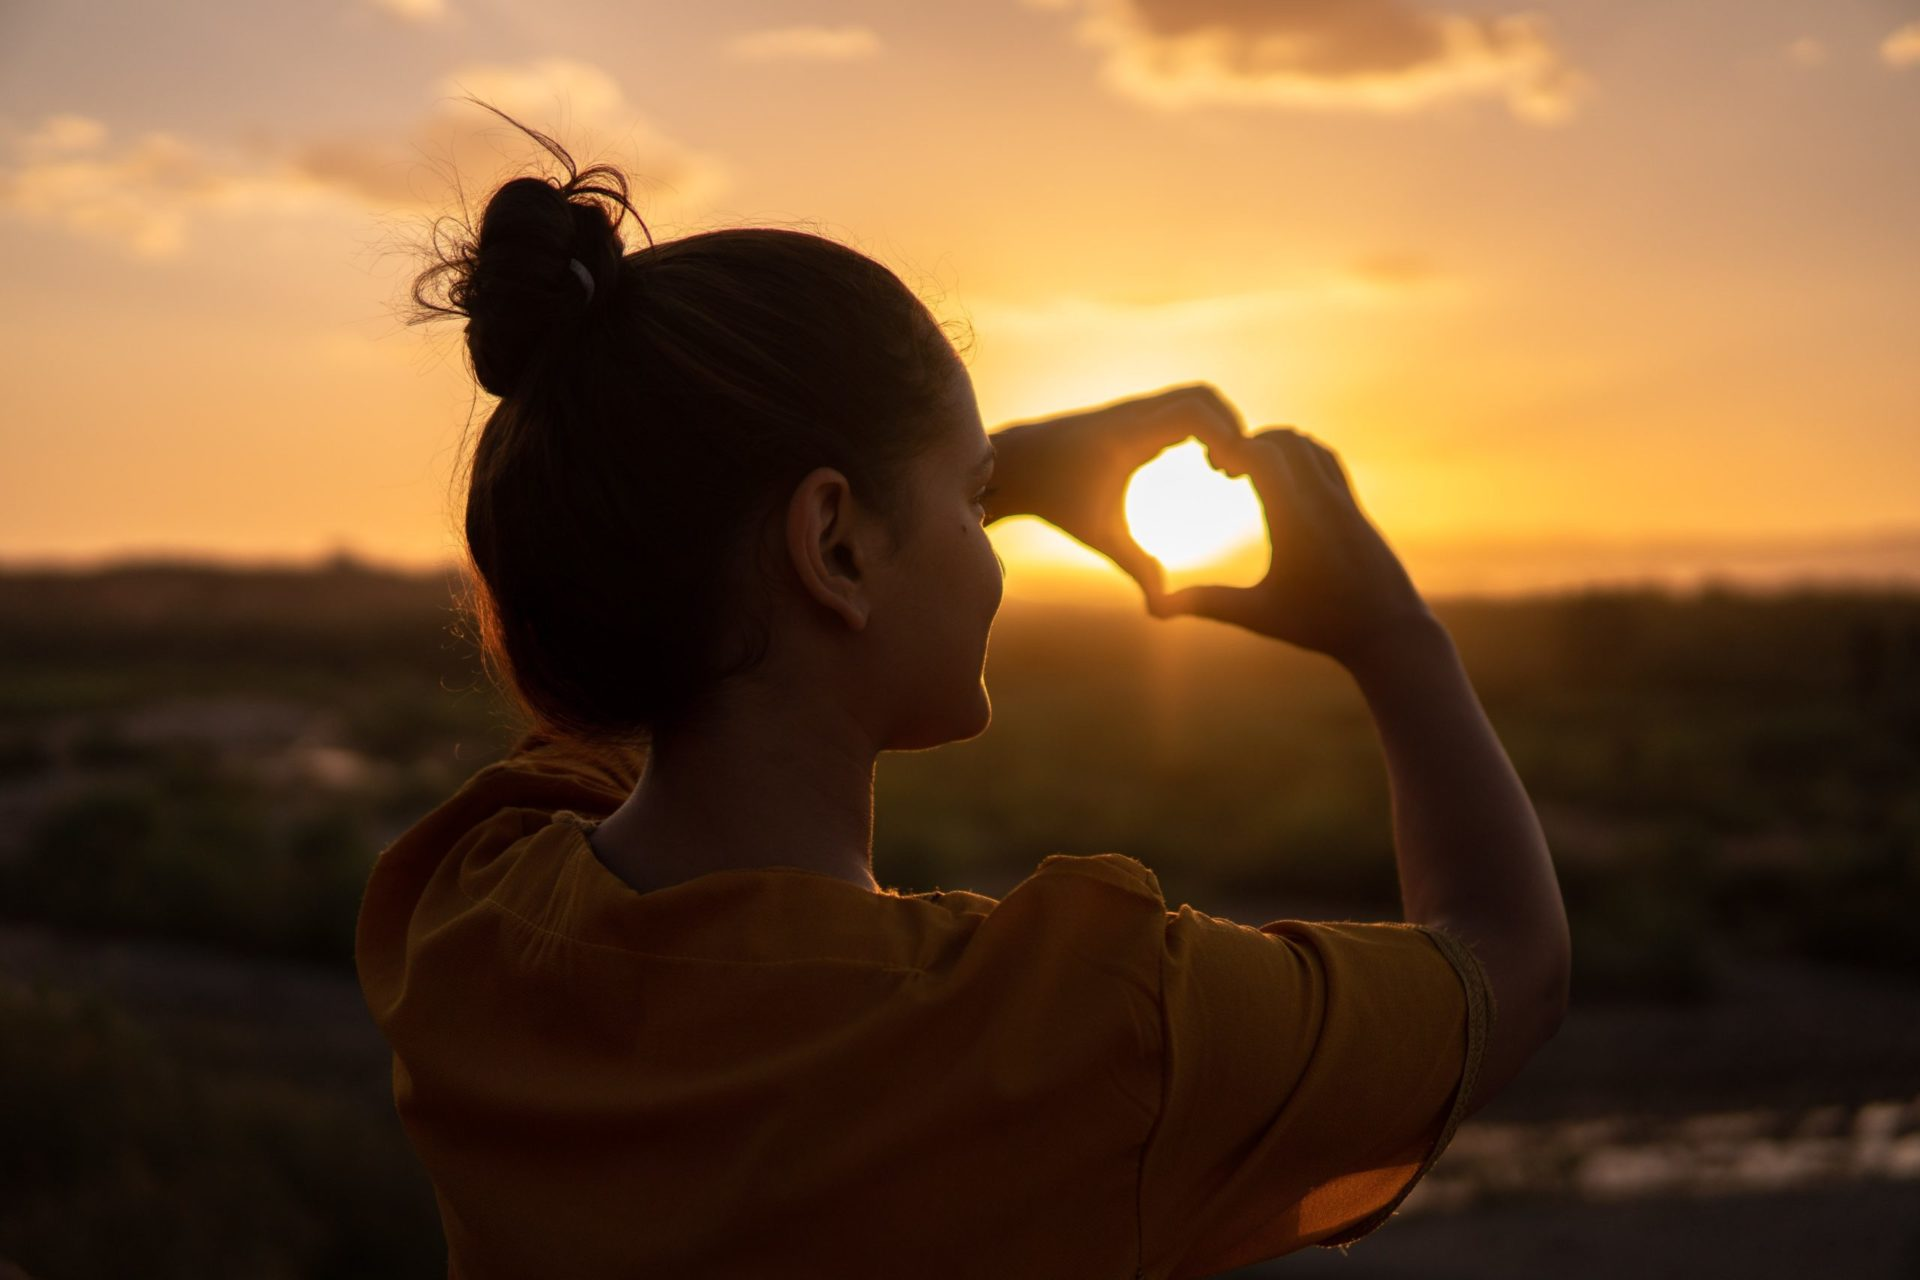 Woman smiling and holding hands in shape of heart in front of sunset